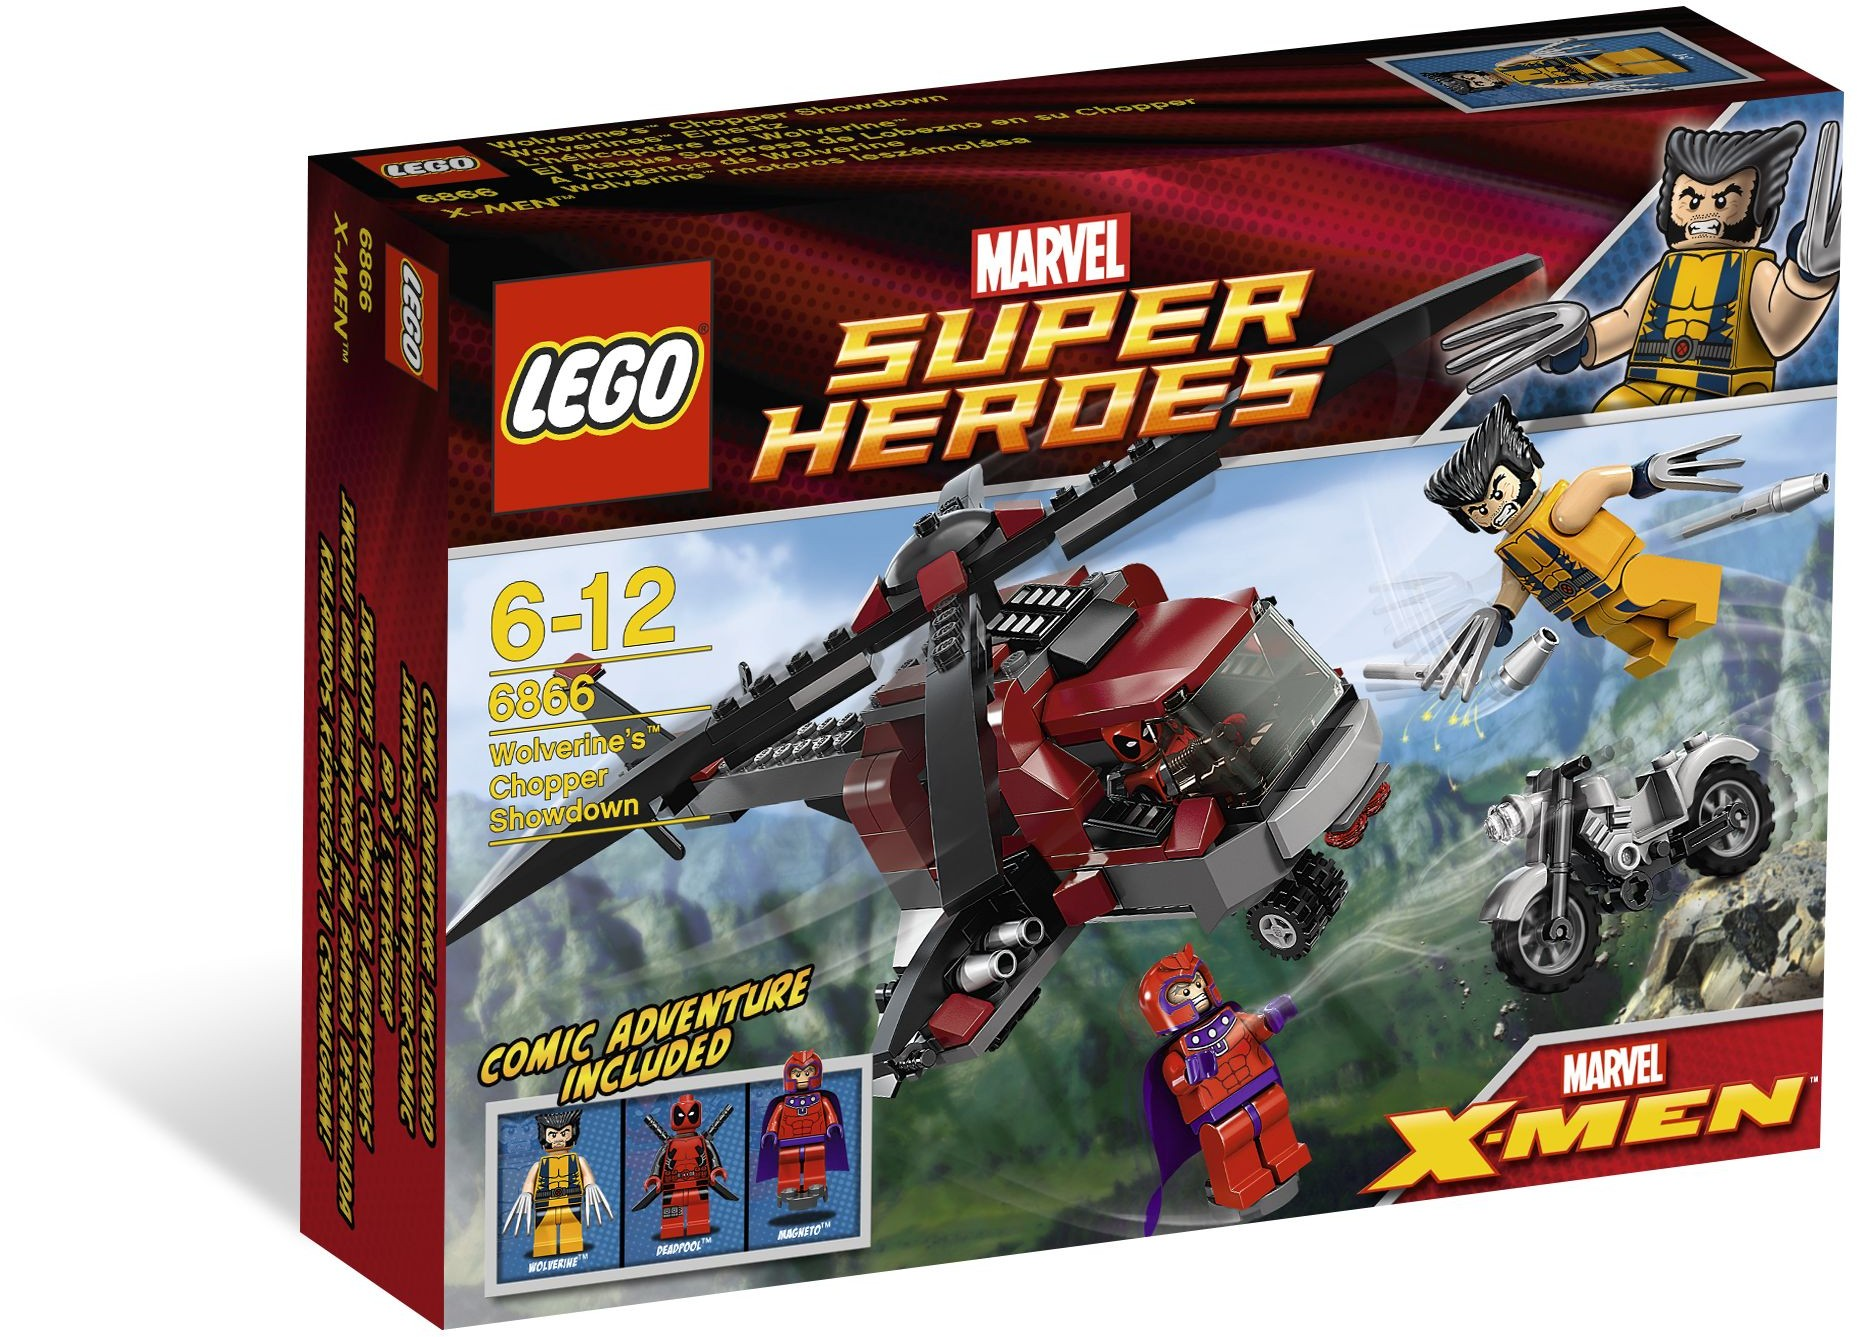 LEGO 6866 - Super Heroes - Wolverine's Chopper Showdown